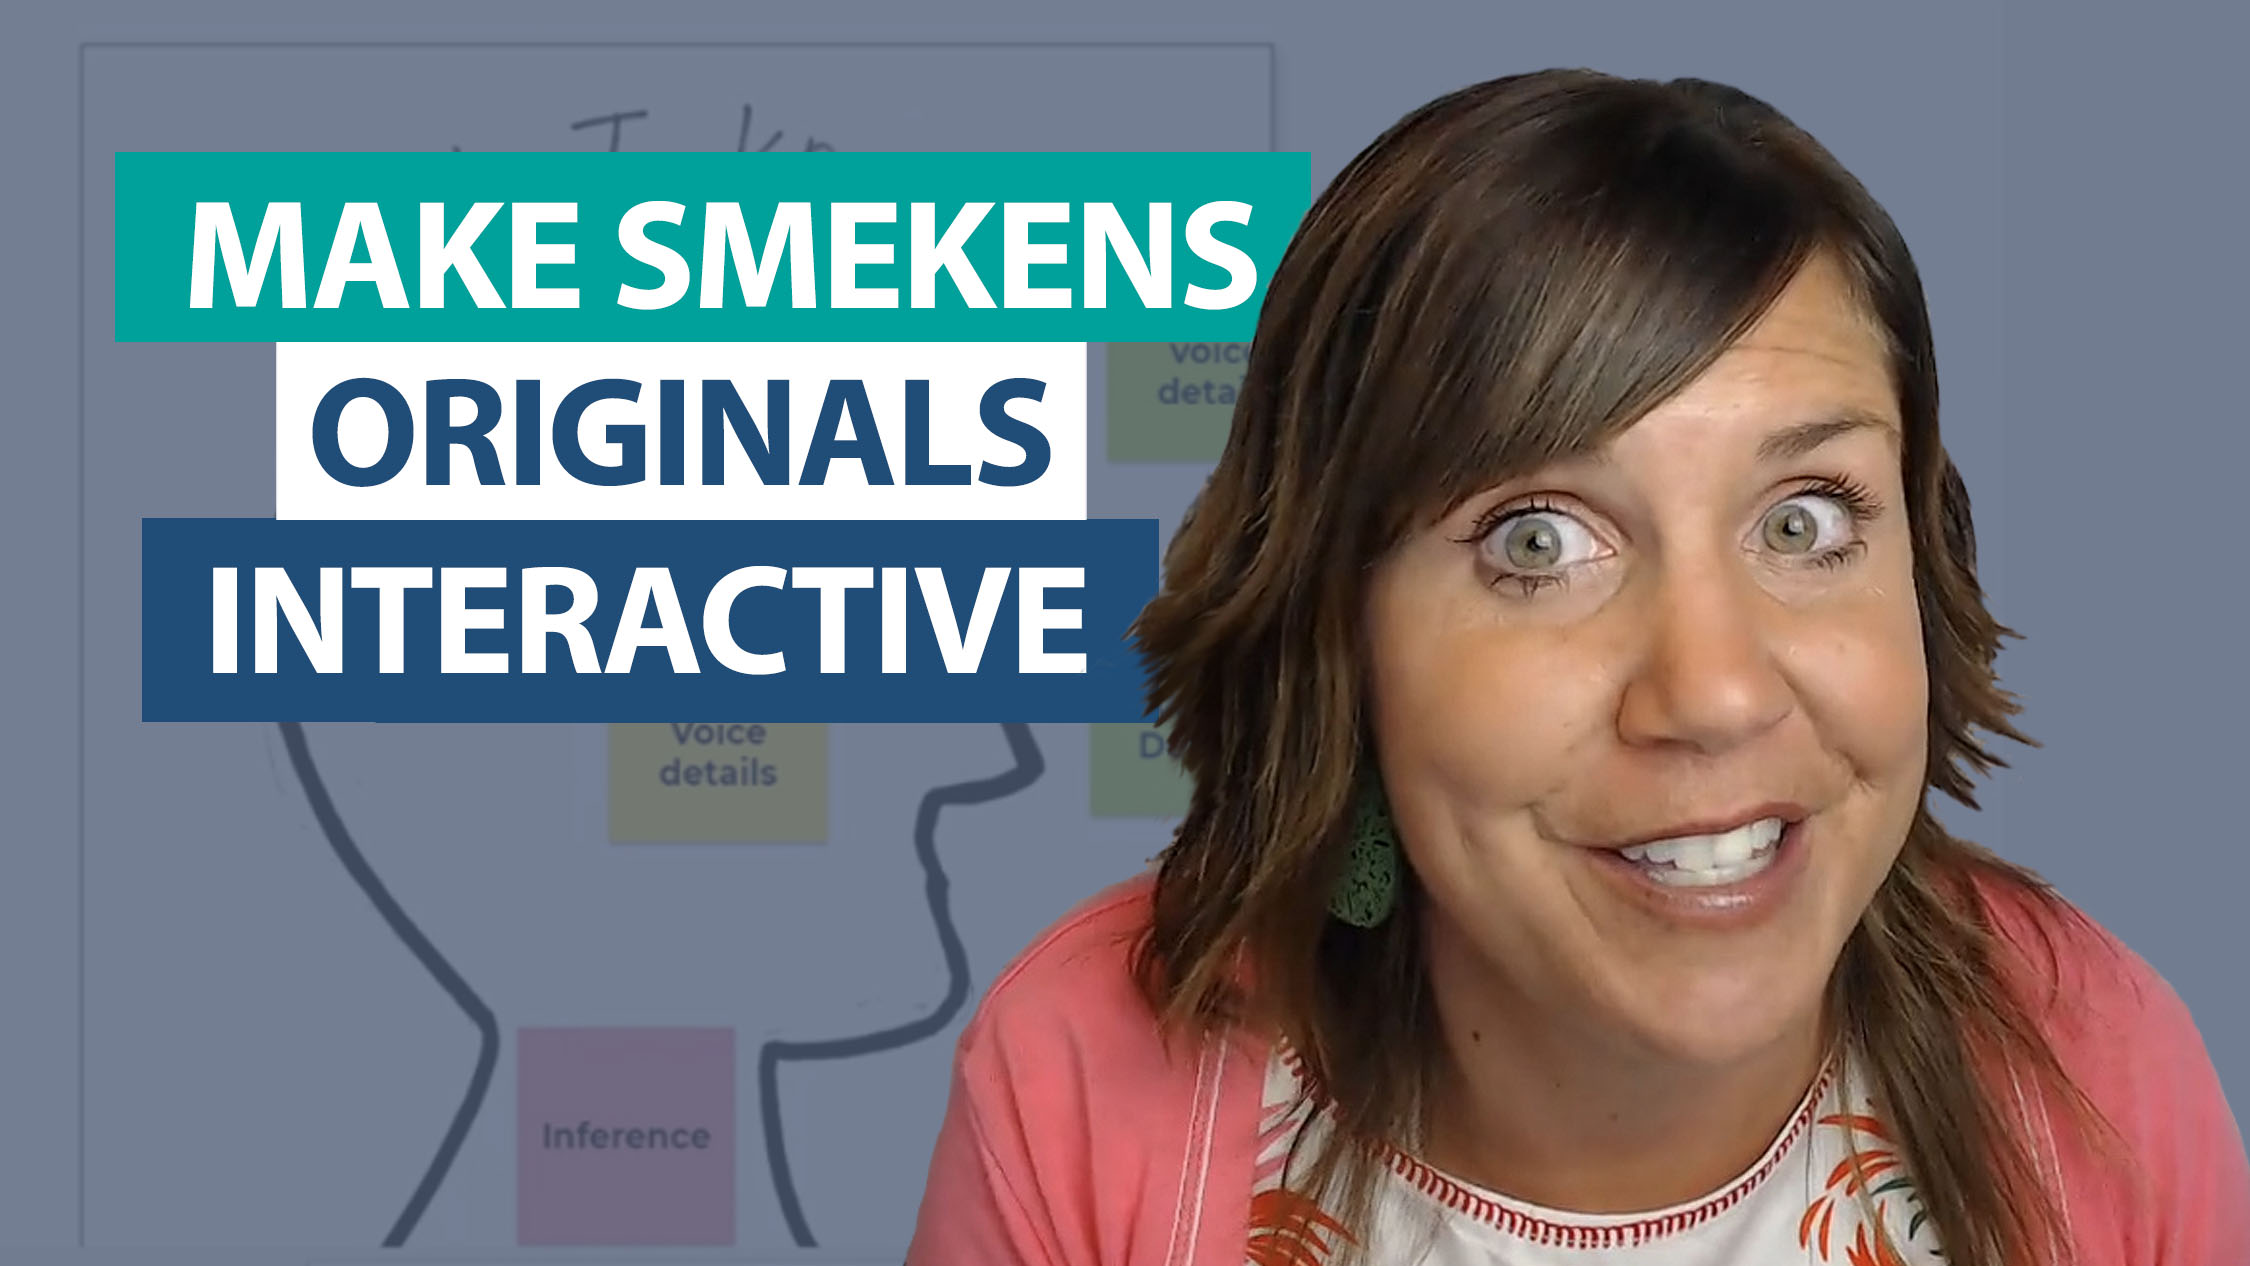 How do I take my favorite Smekens strategies and make them digital and interactive?